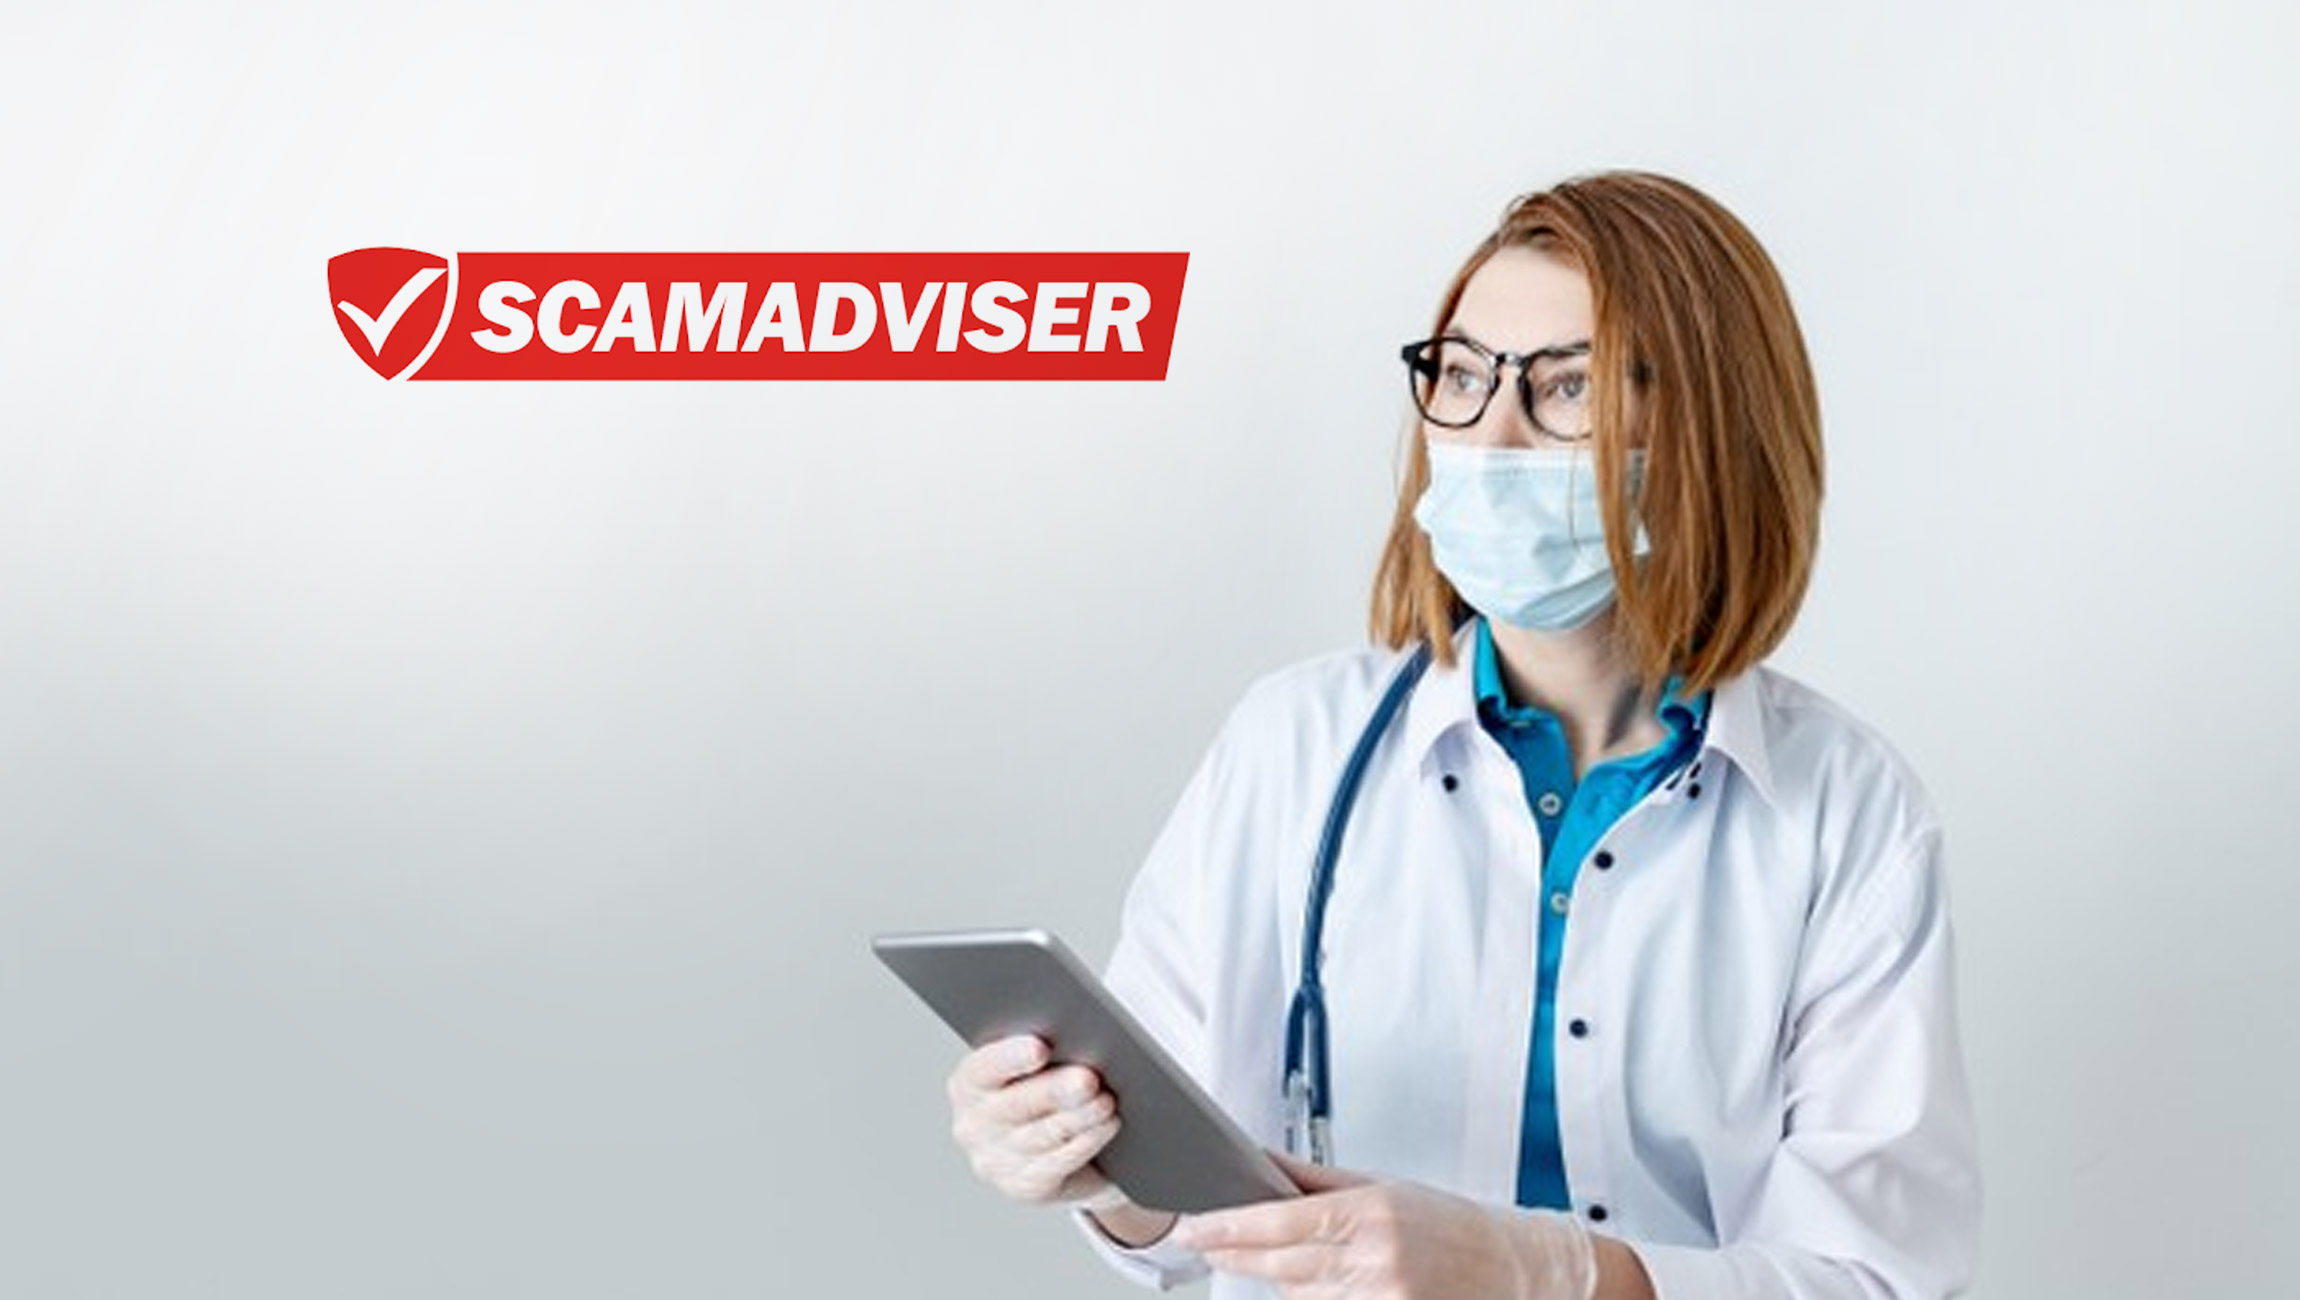 New Scamadviser Survey Find 28% Of Consumers Would Consider Buying A Coronavirus Vaccine Online